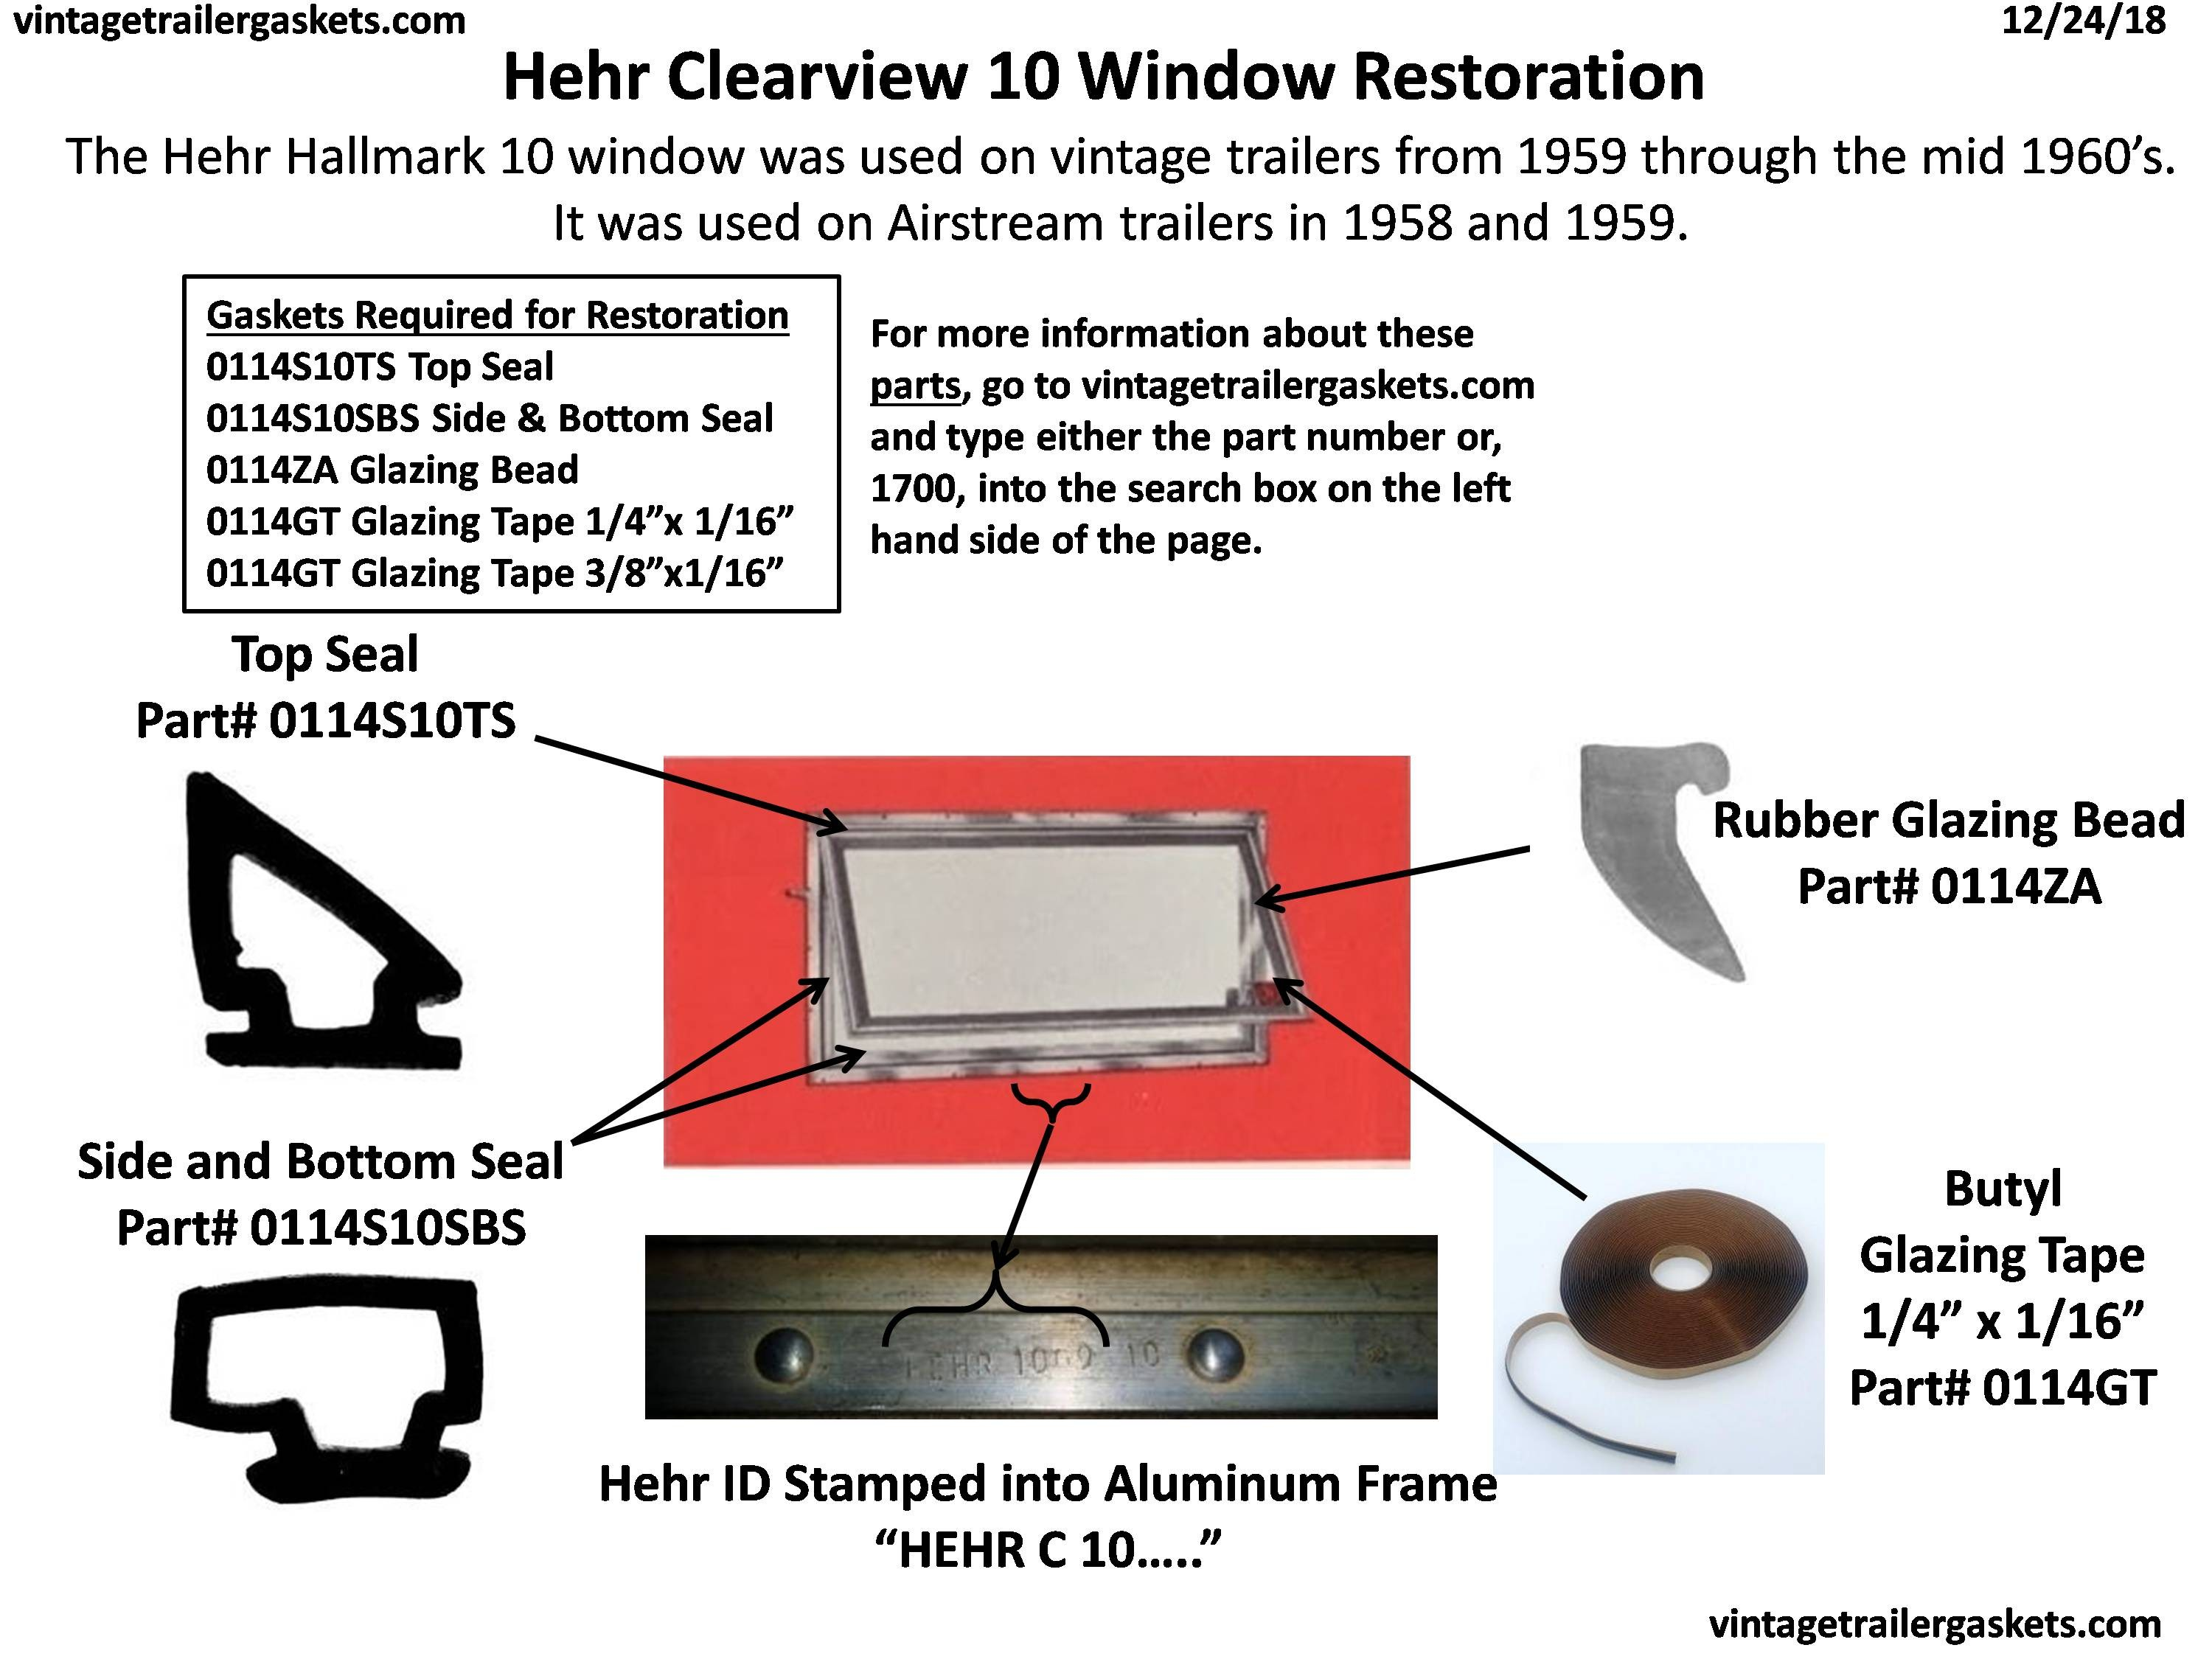 Hehr Clearview 1000 Vintage Awning Window